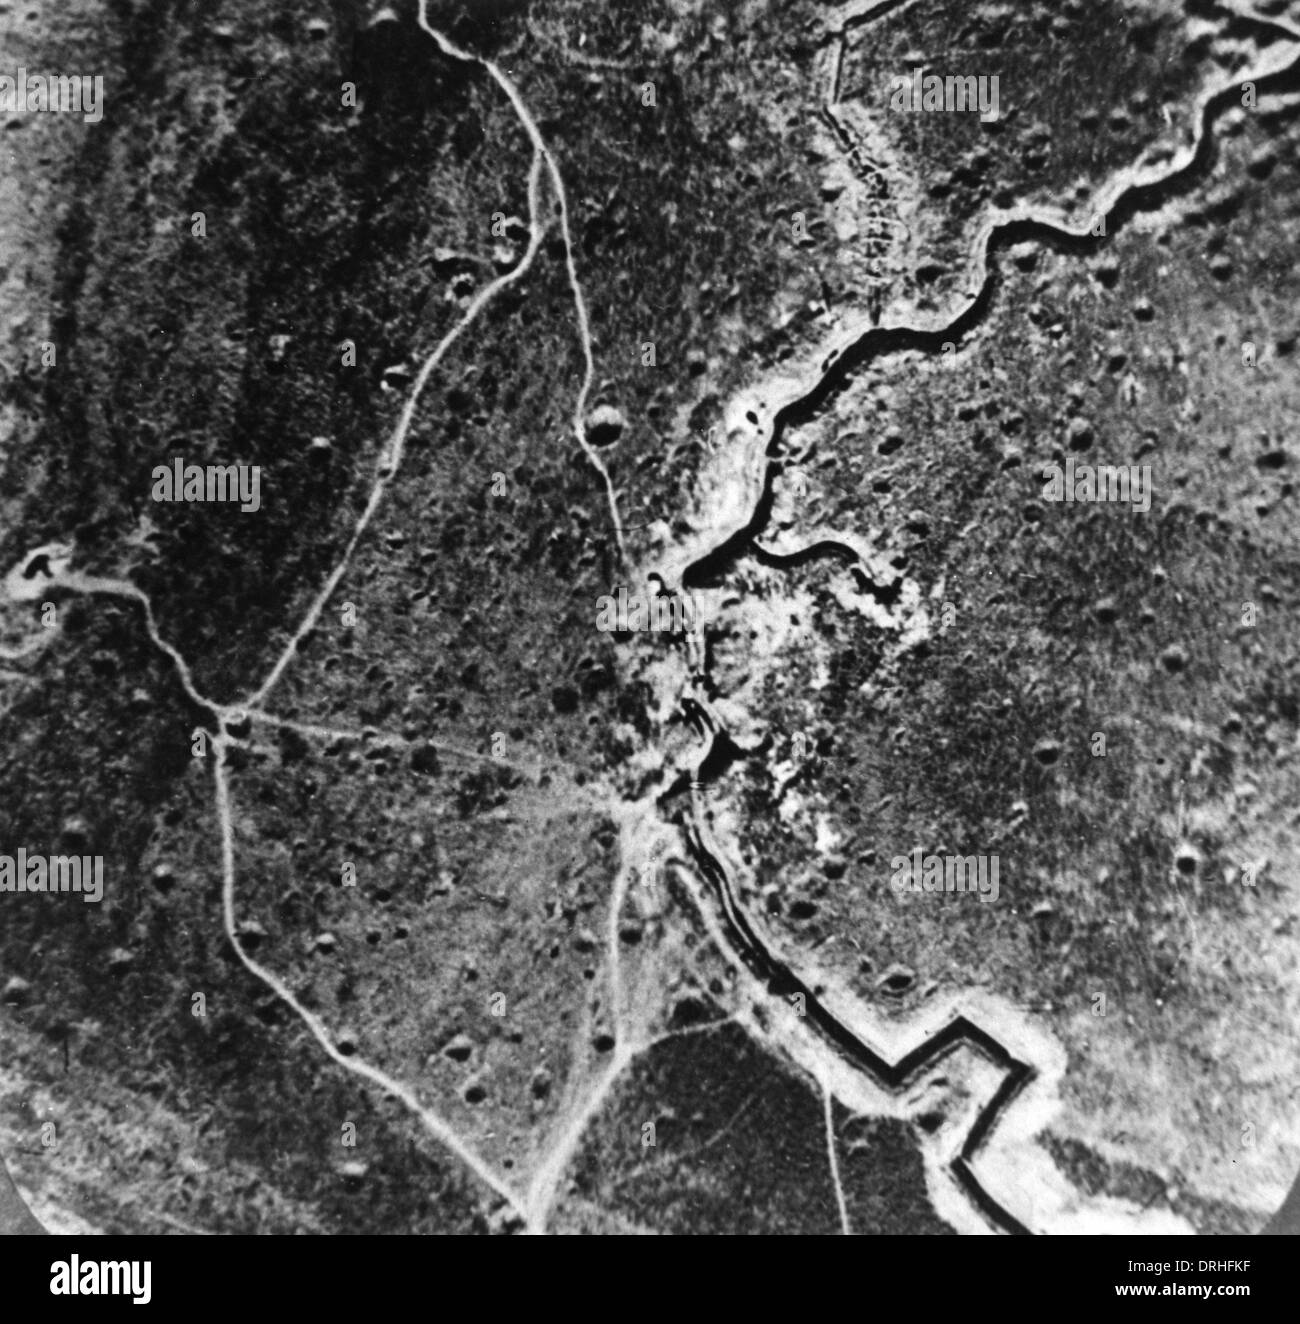 Aerial photograph of trenches and mine craters, WW1 - Stock Image